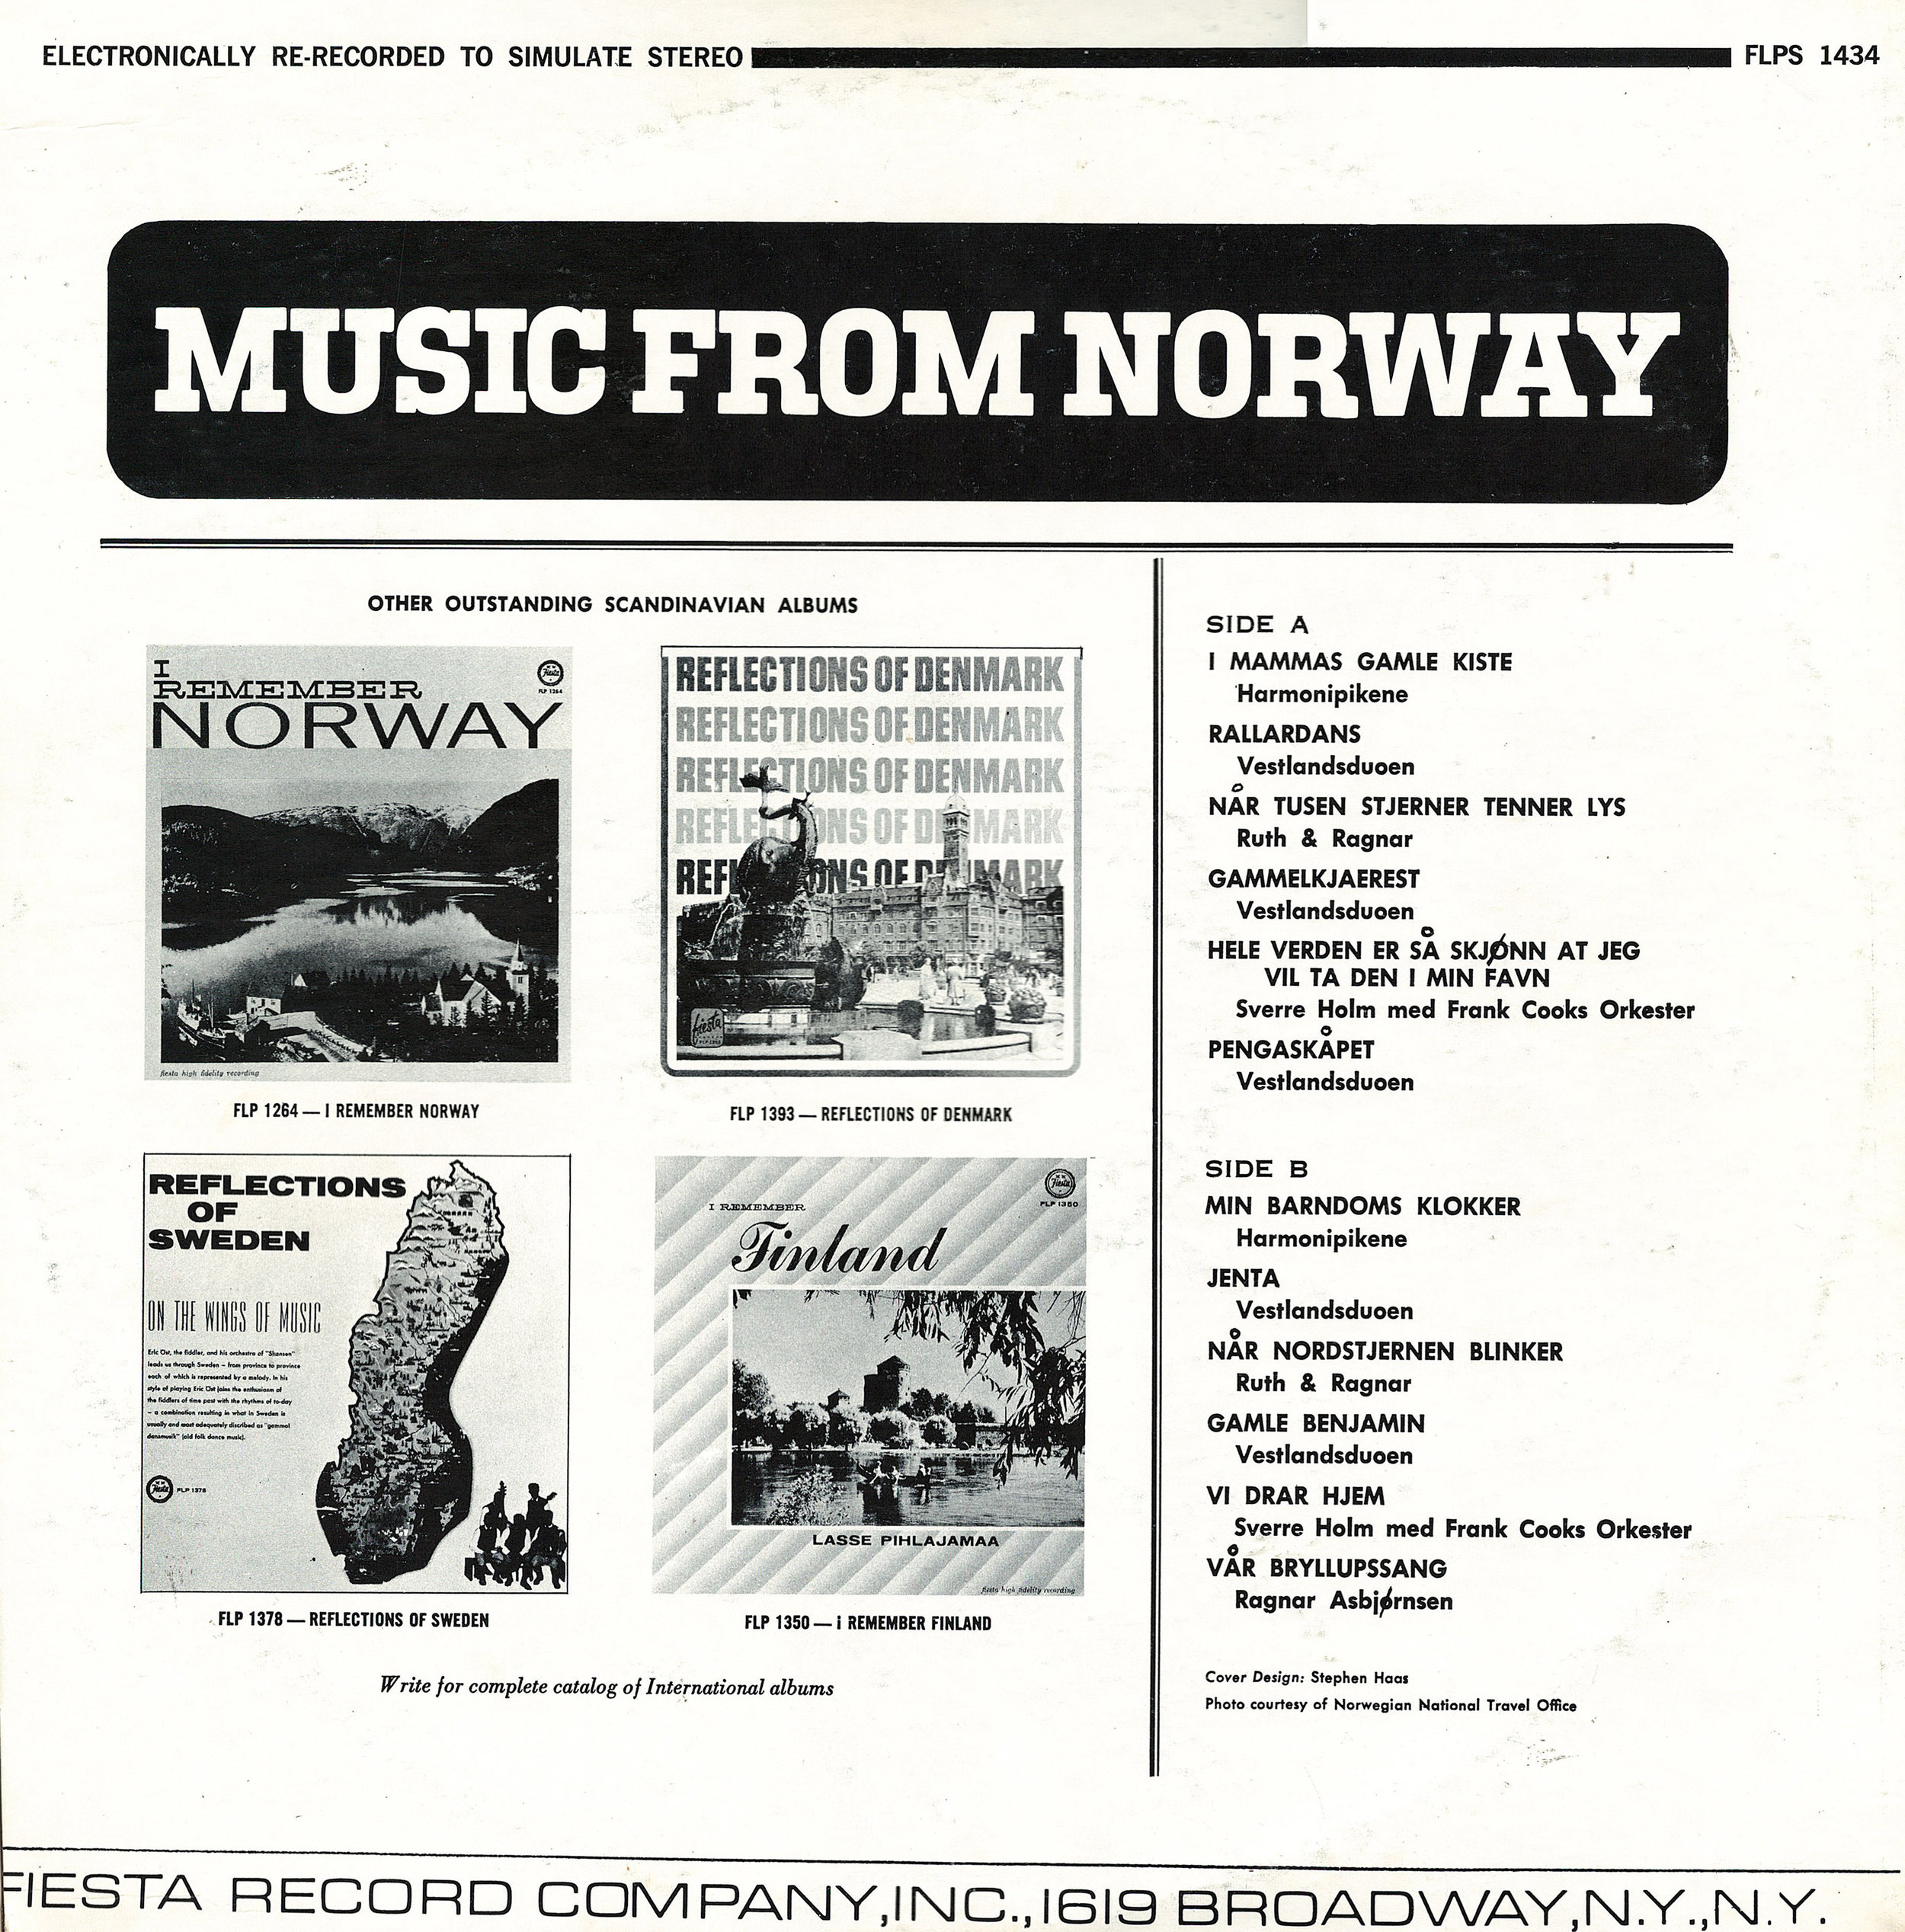 MUSIC_FROM_NORWAY_B.jpg